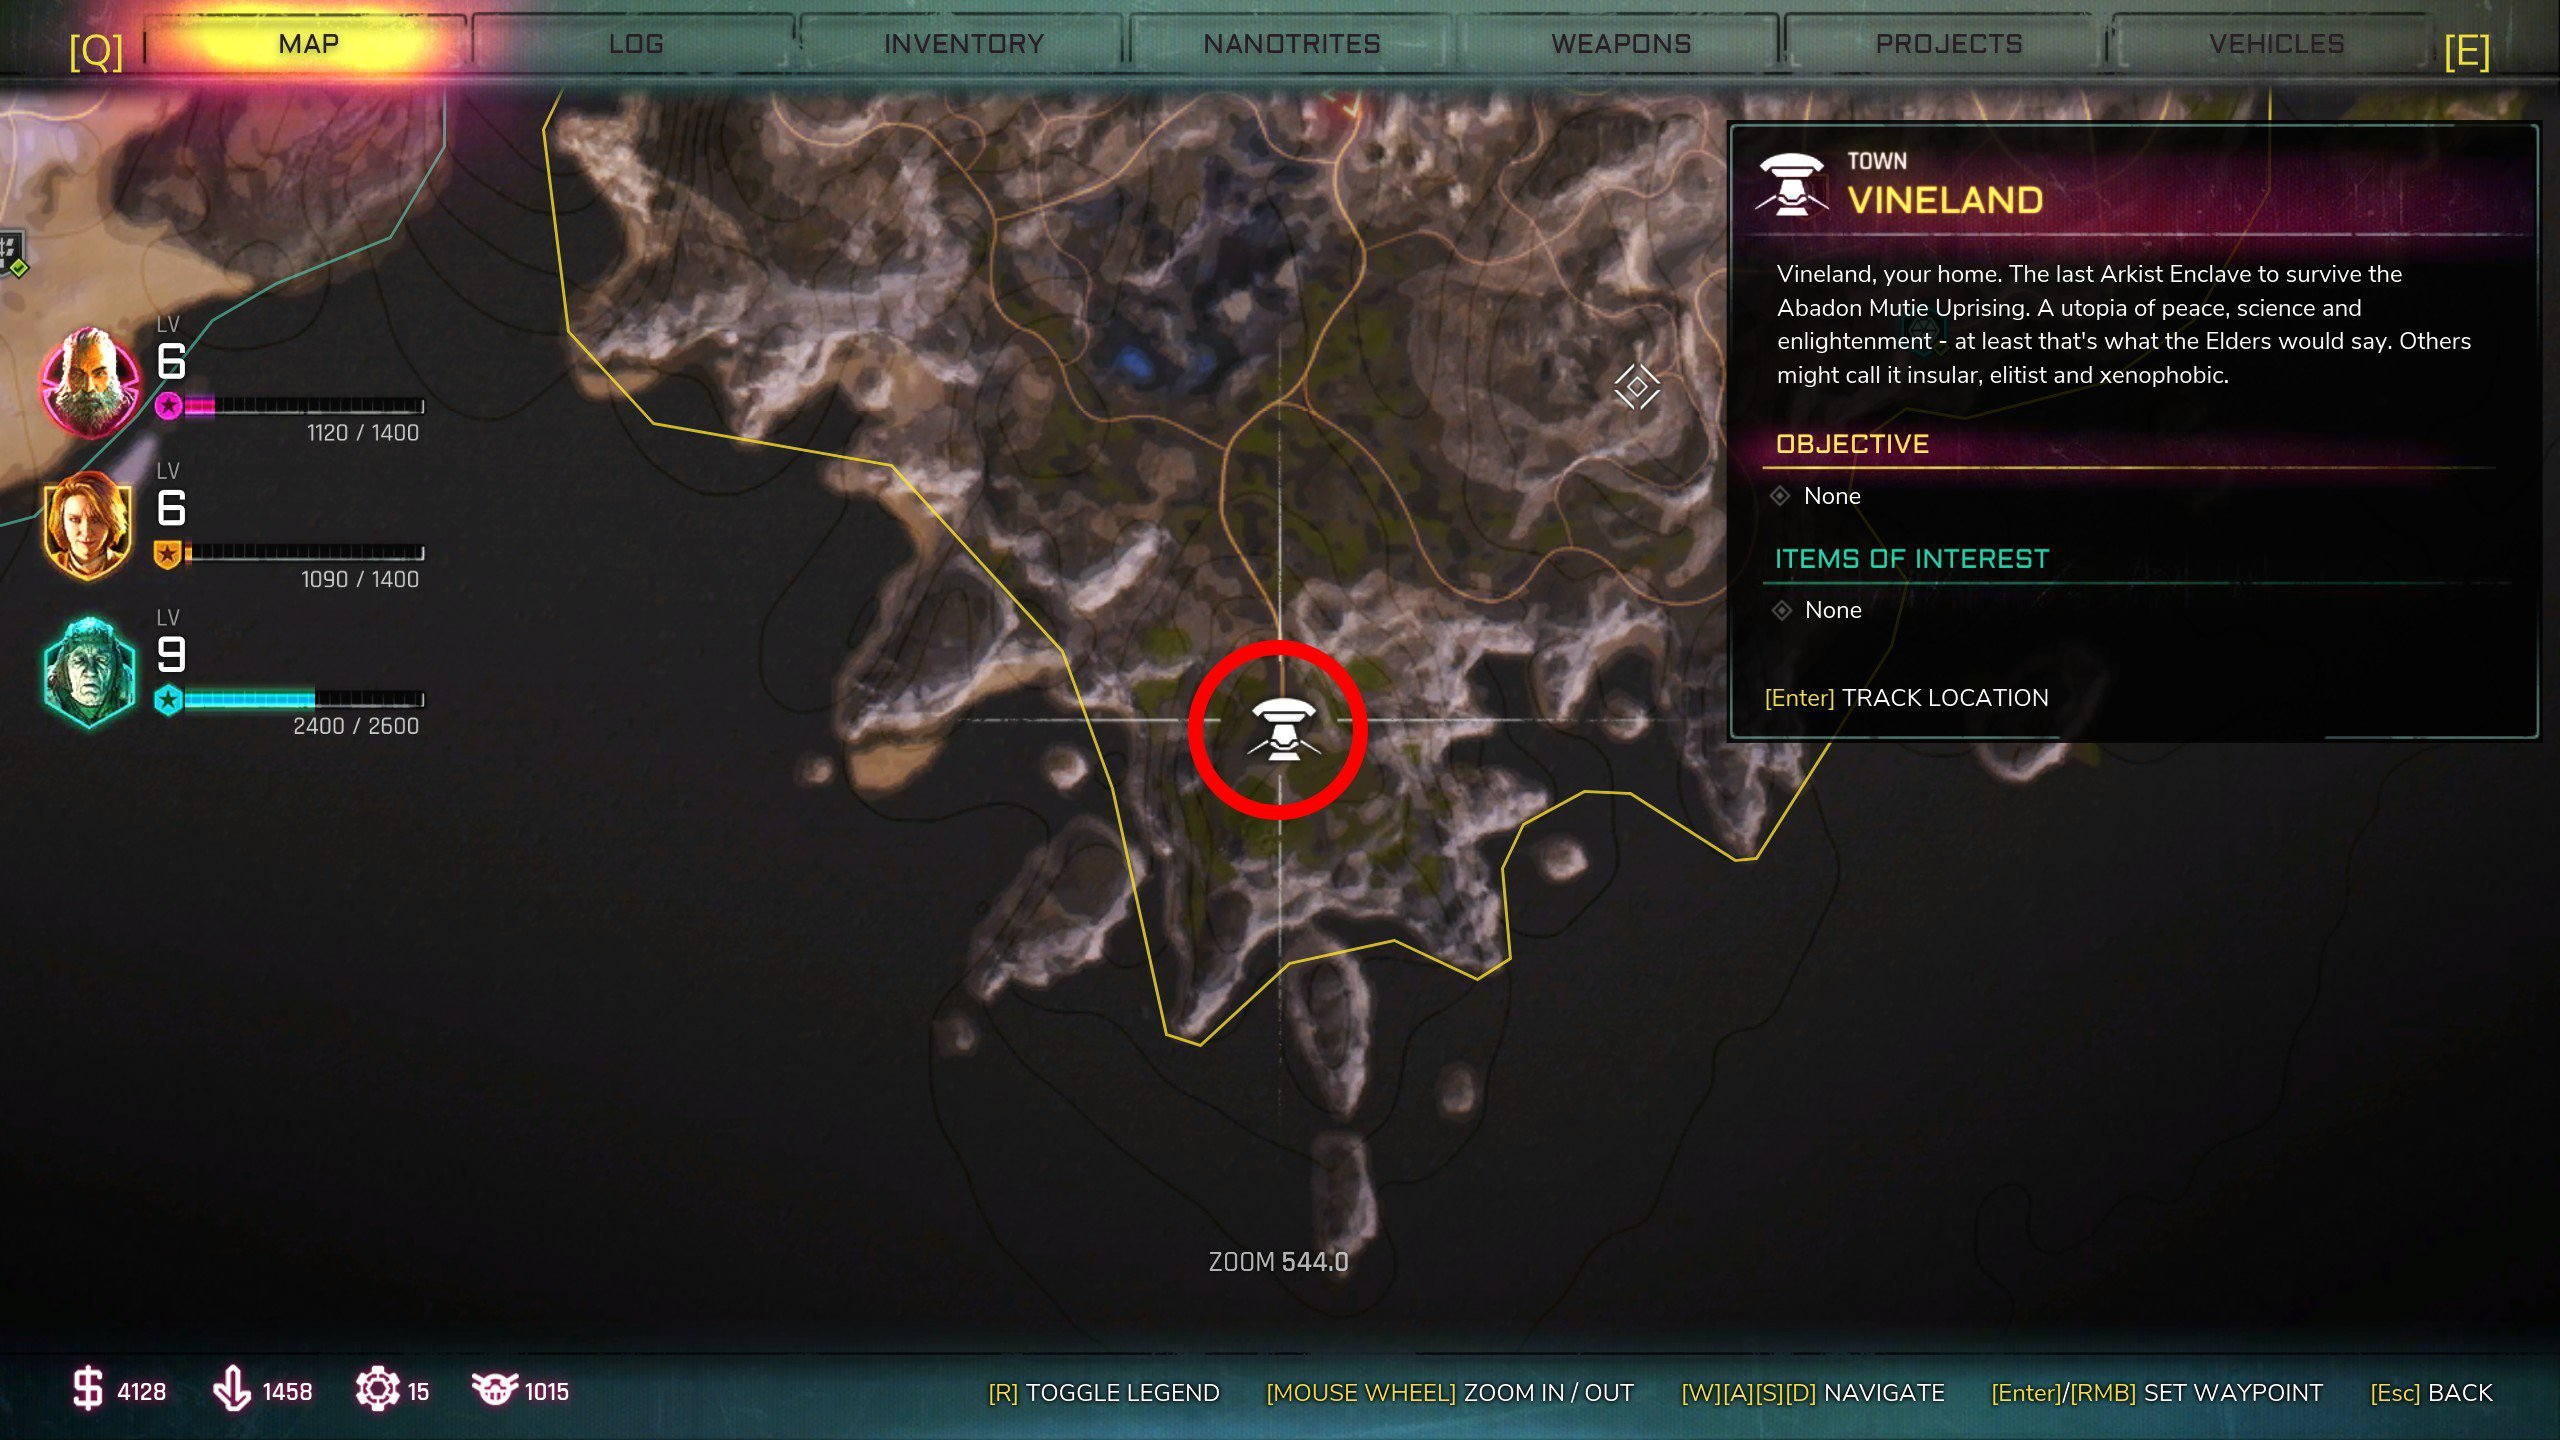 Vineland Ark - All Ark locations in Rage 2